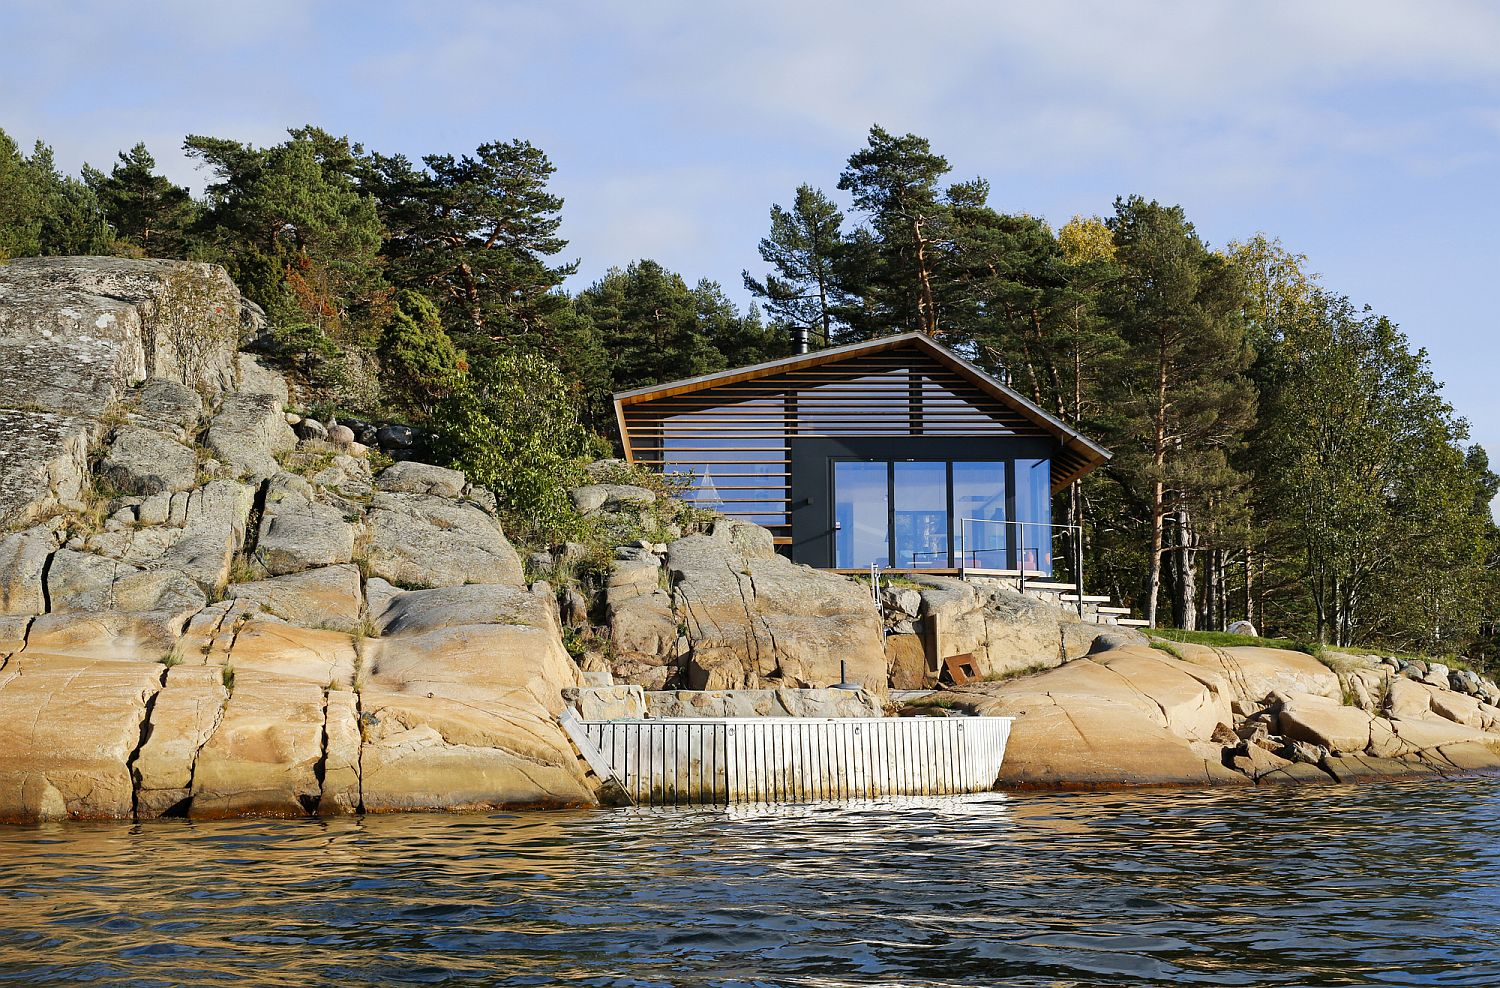 Lovely-cabin-on-the-cost-with-rocky-shore-in-Oslofjord